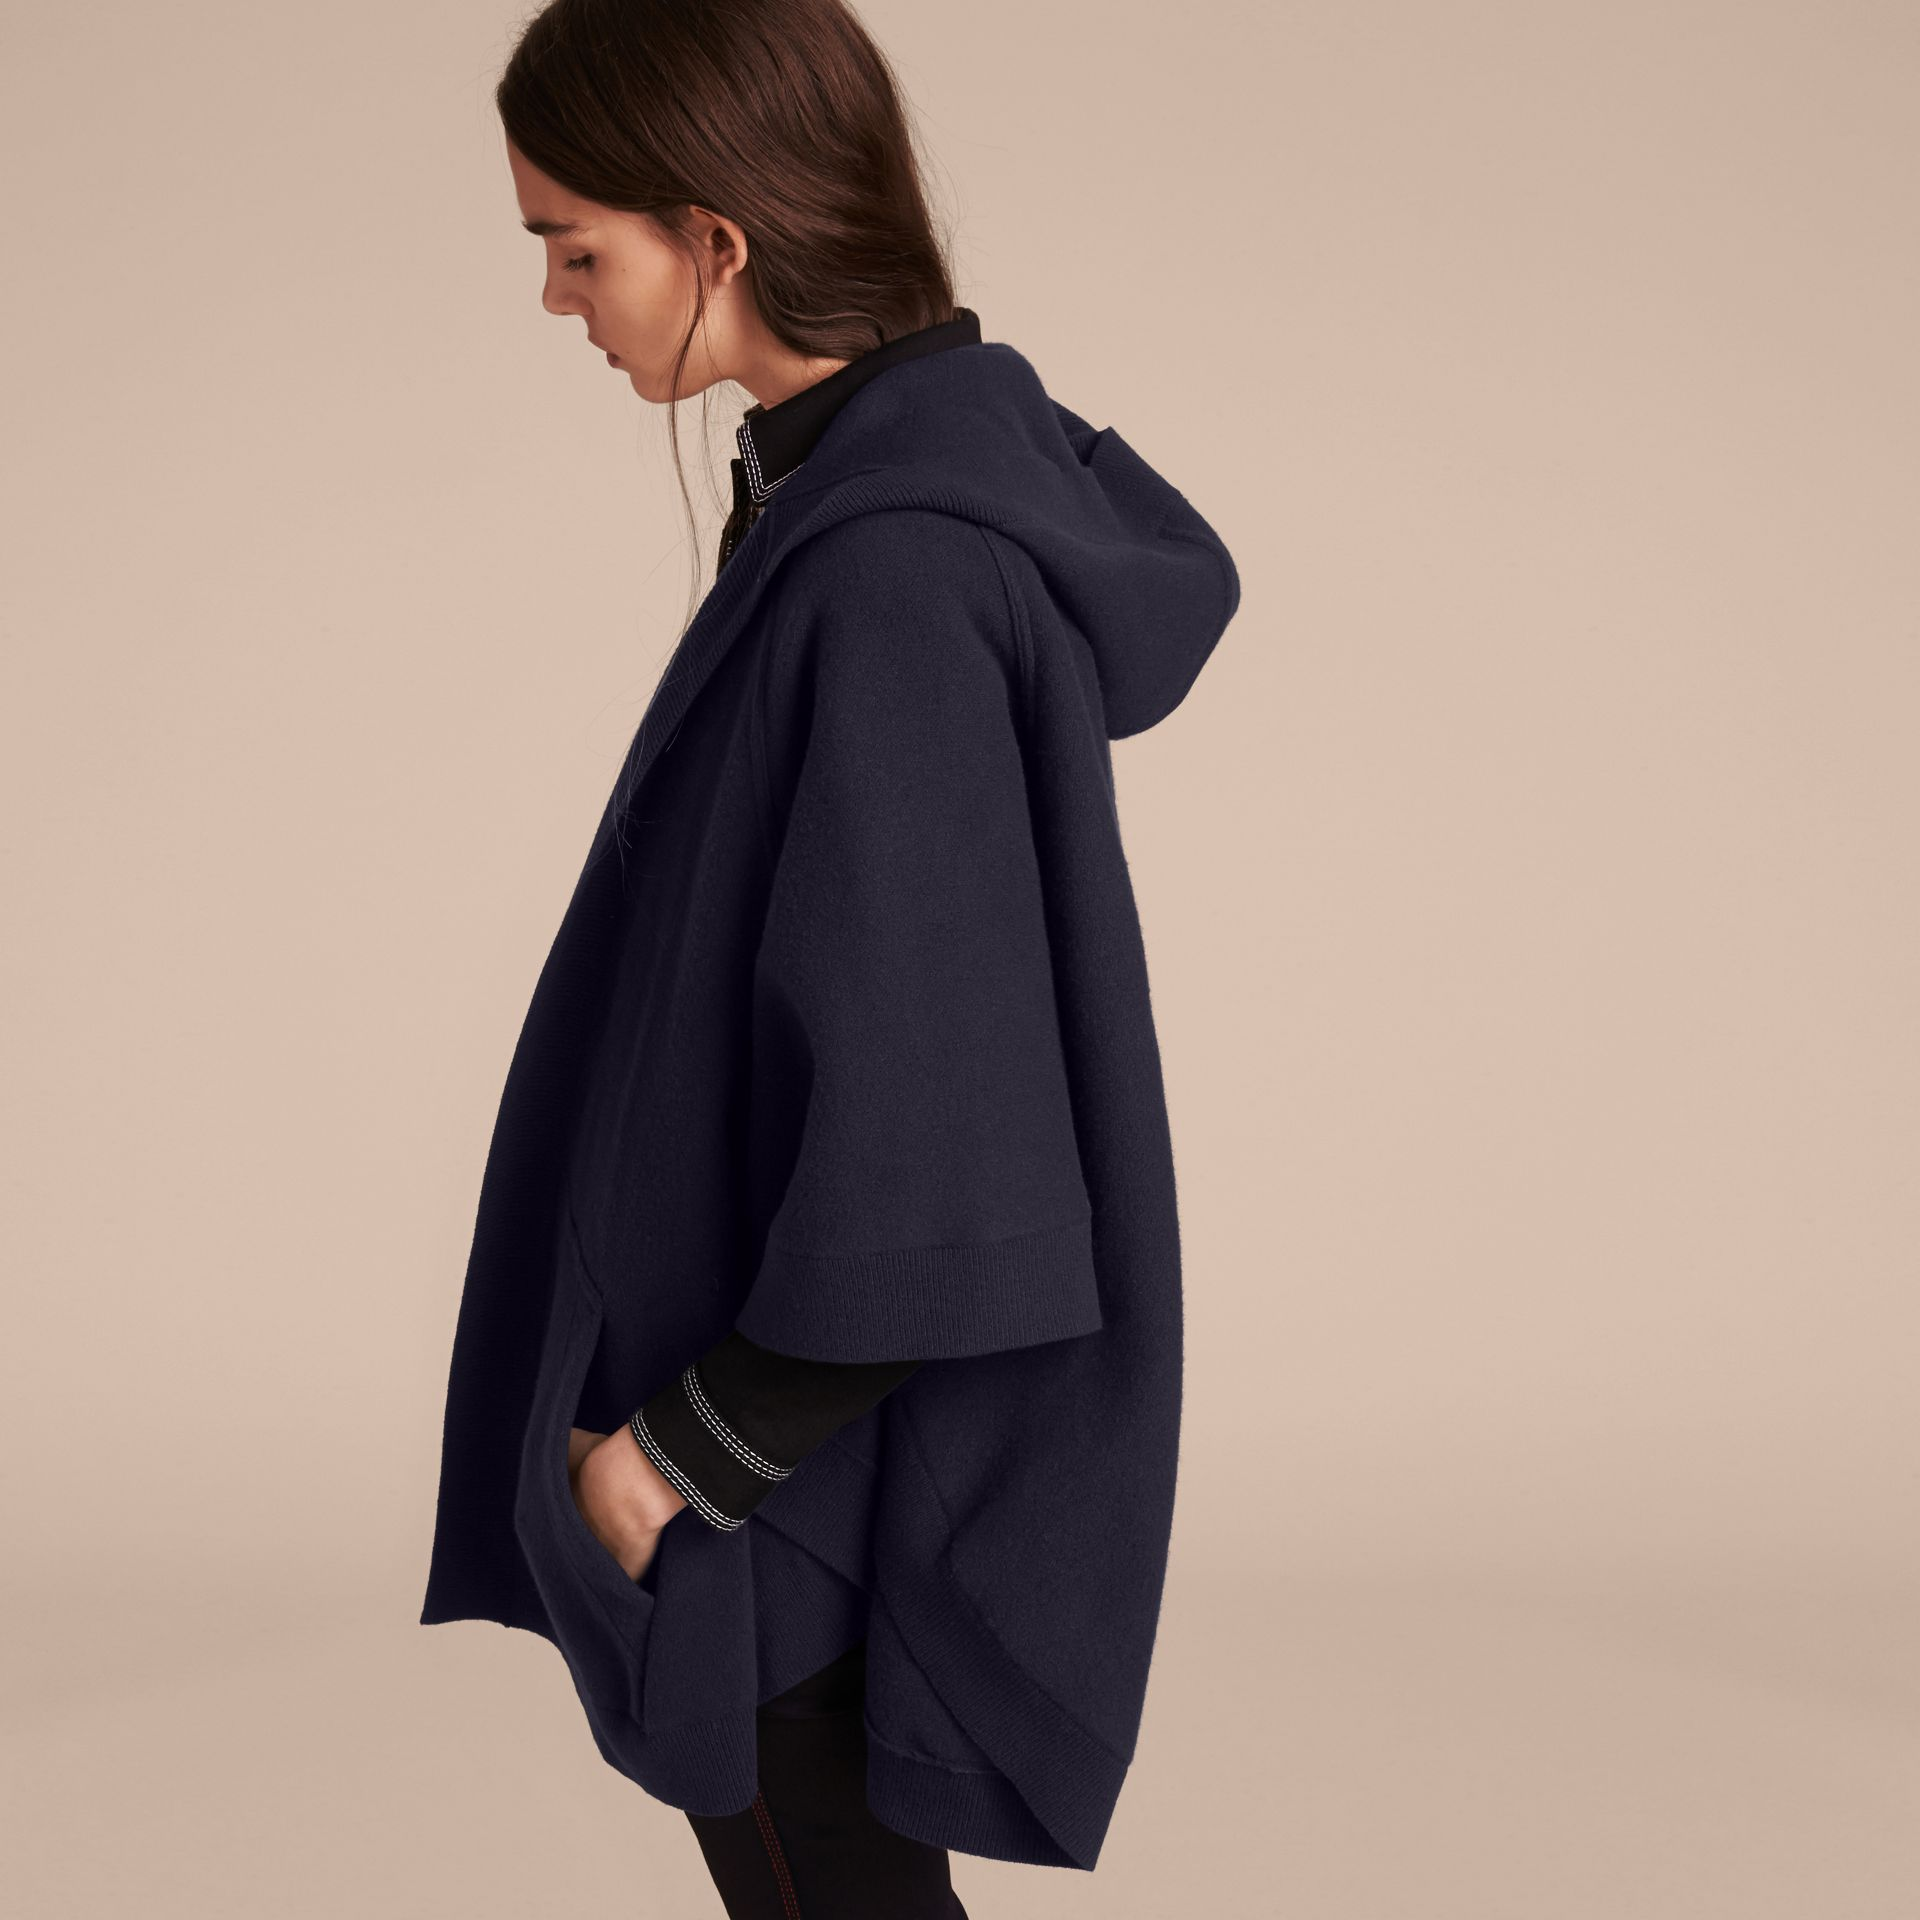 Wool Cashmere Blend Hooded Poncho in Navy/black - Women | Burberry - gallery image 2